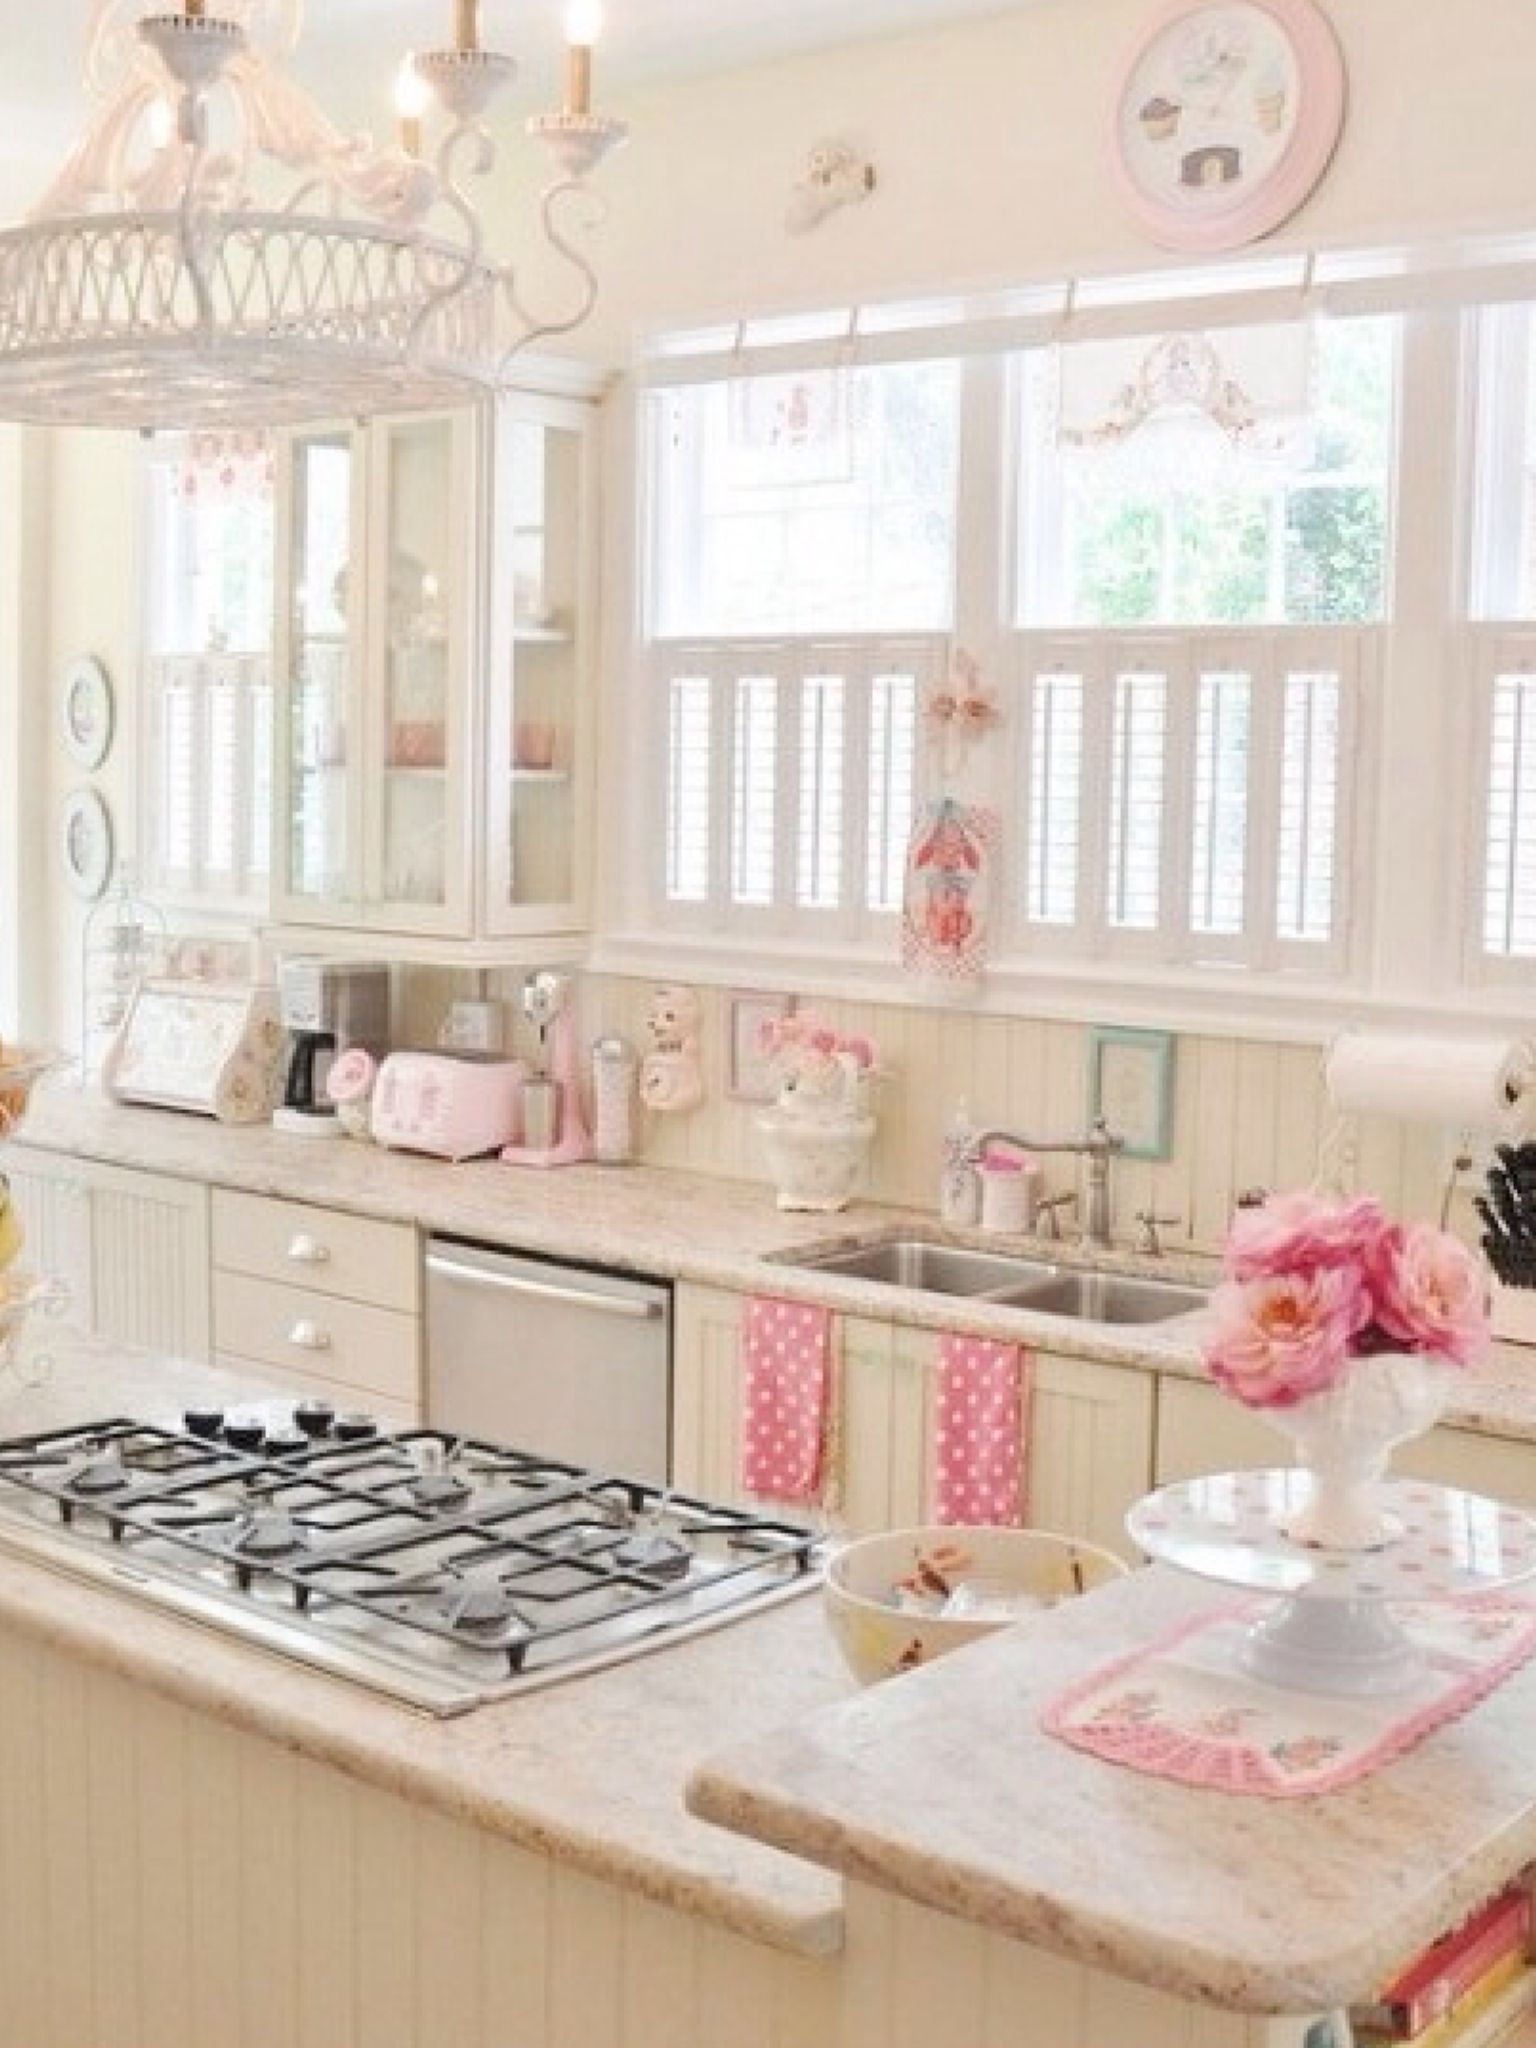 vintage yet romantic kitchen to suit your taste romantic kitchen shabby chic kitchen cute on kitchen decor pink id=58846